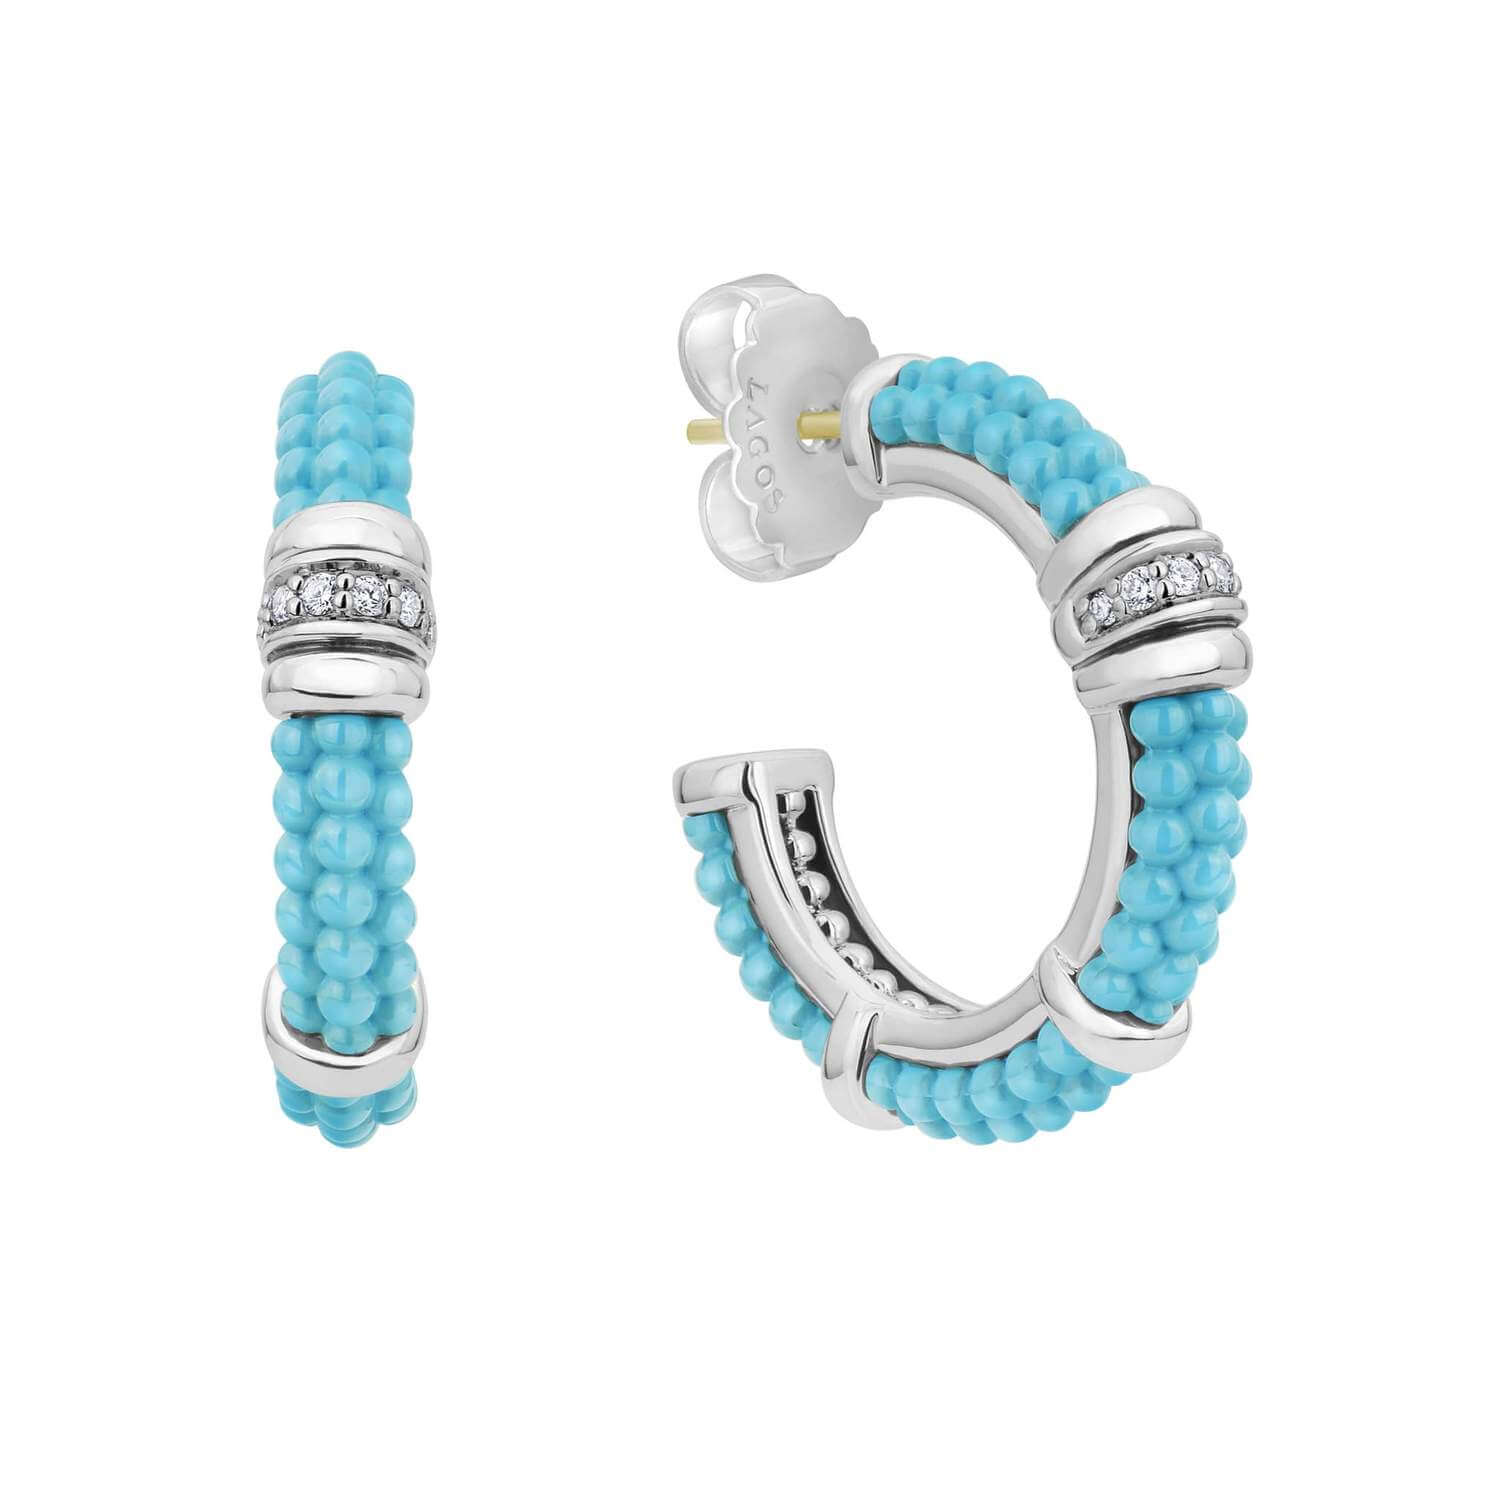 Lago Blue Caviar Hoop earrings with sterling silver and diamonds